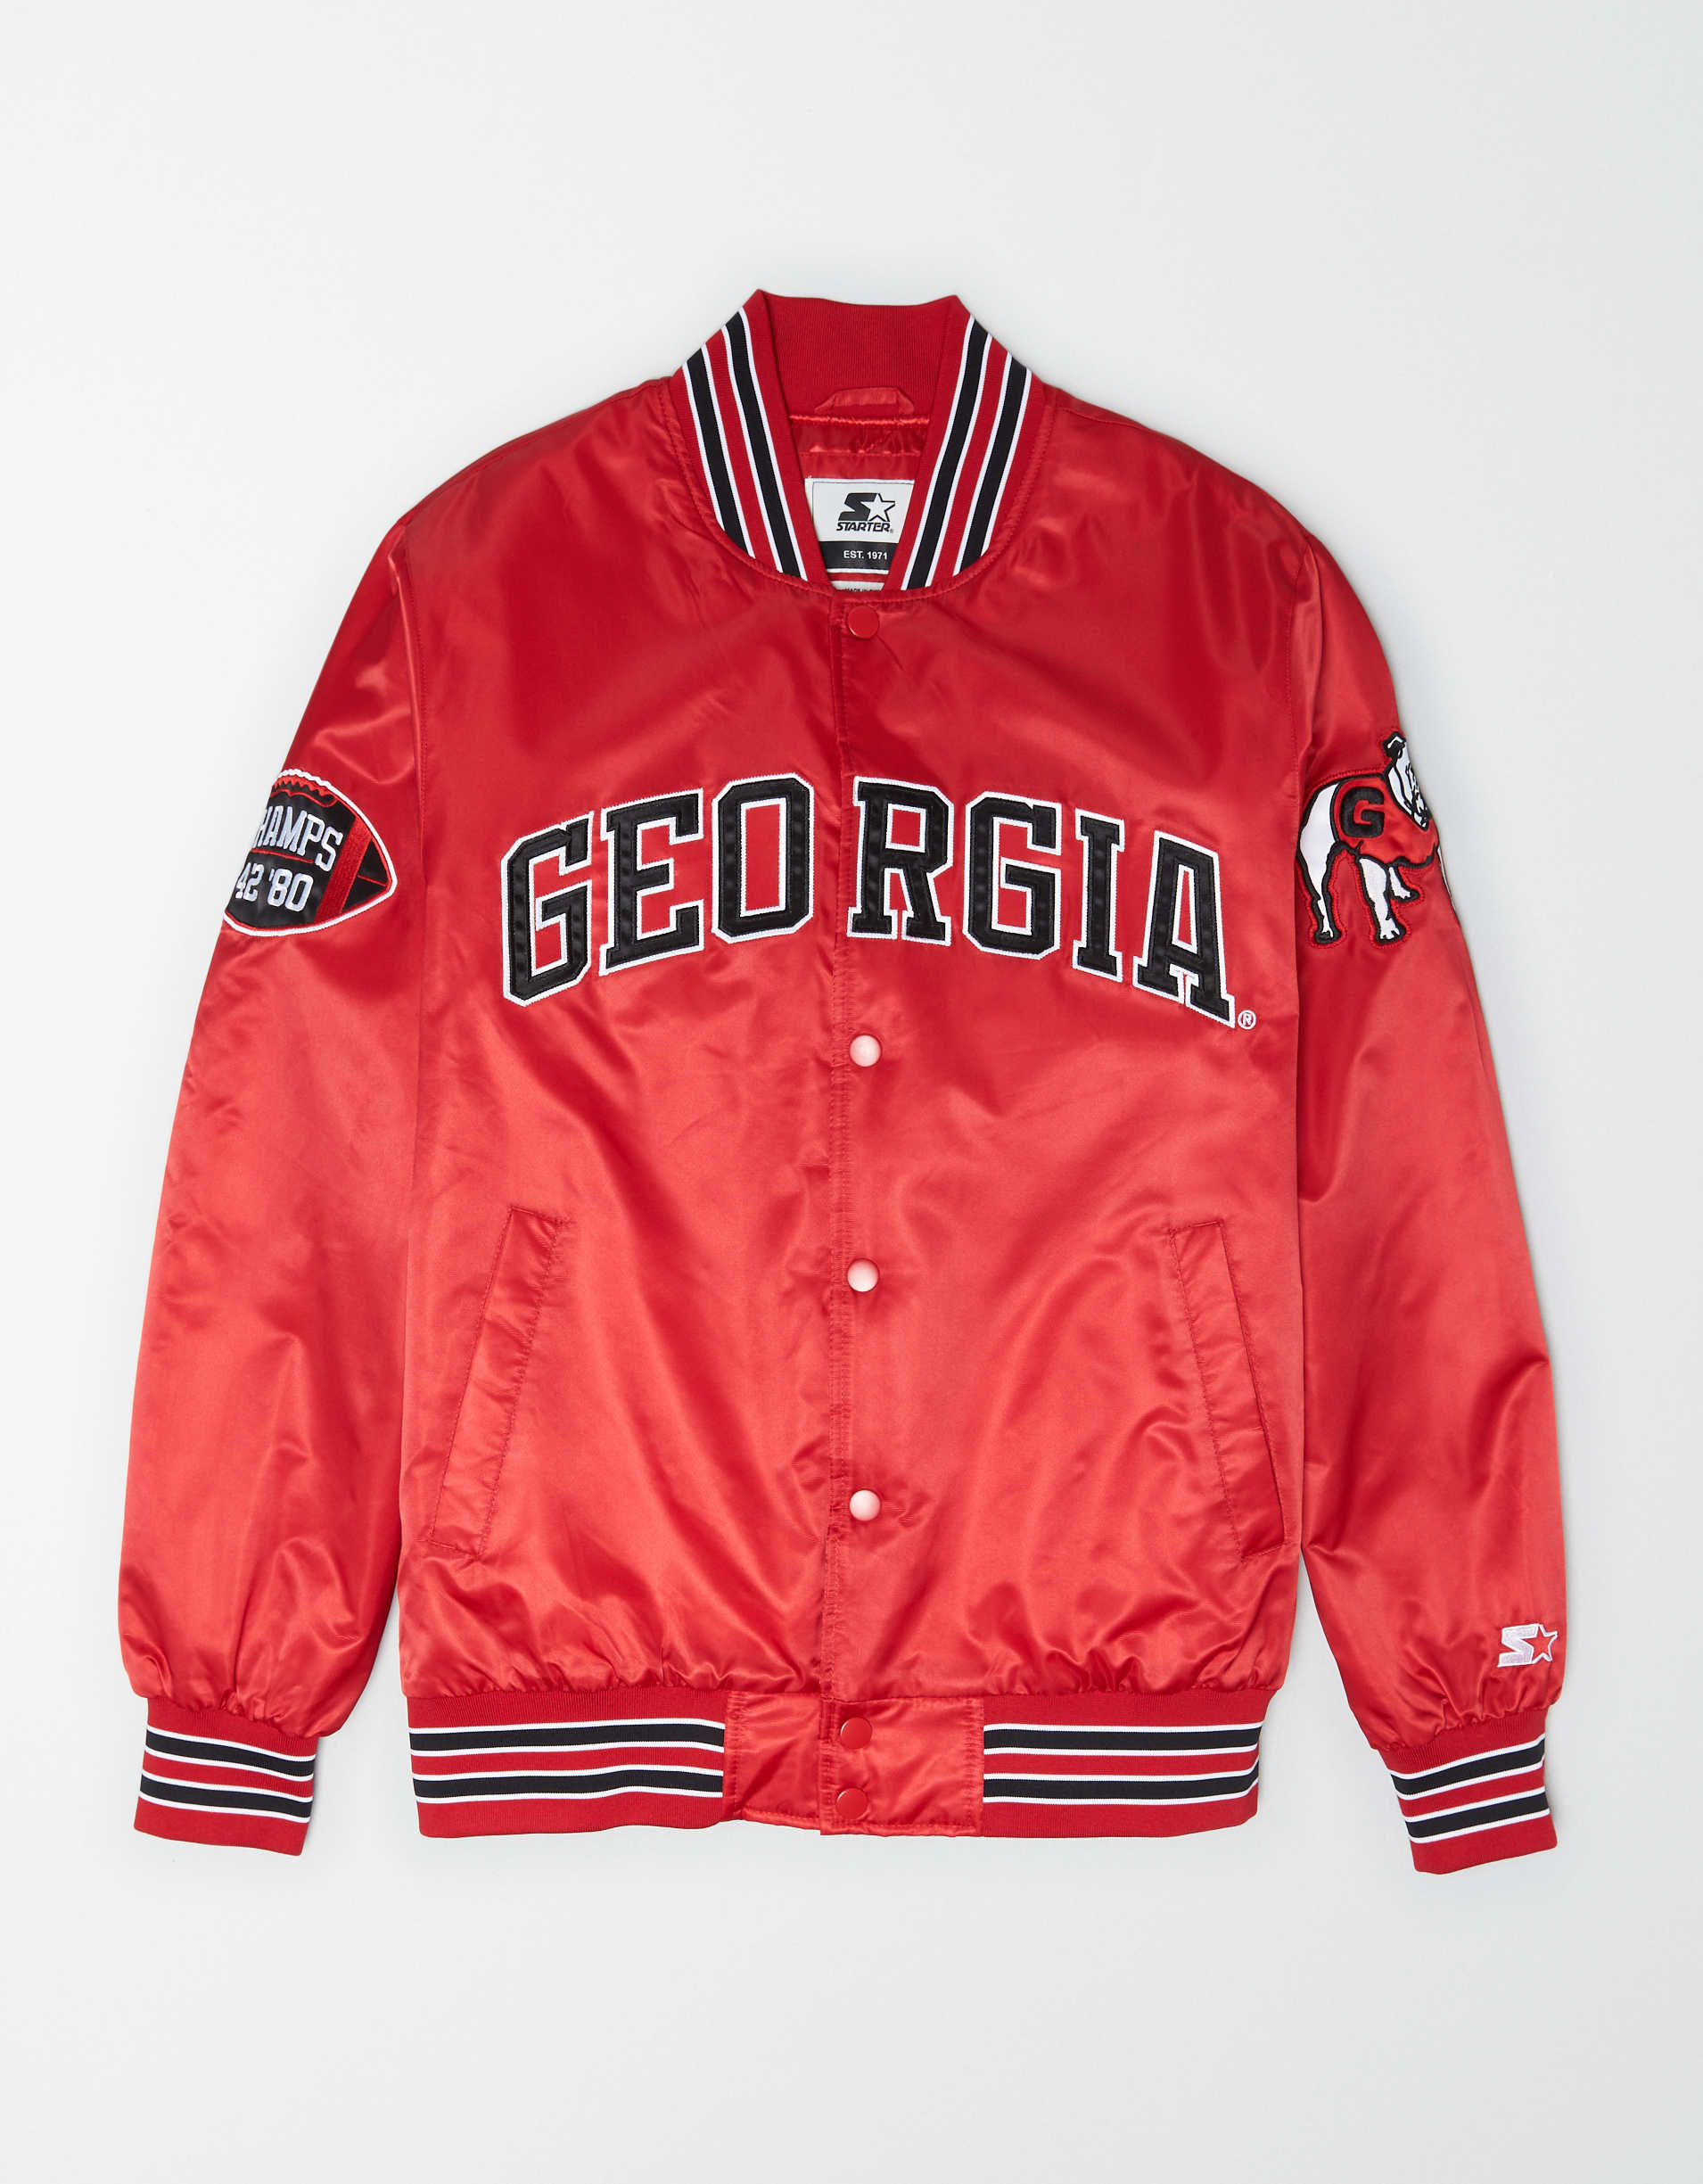 Tailgate X Starter Men's Georgia Bulldogs Varsity Jacket